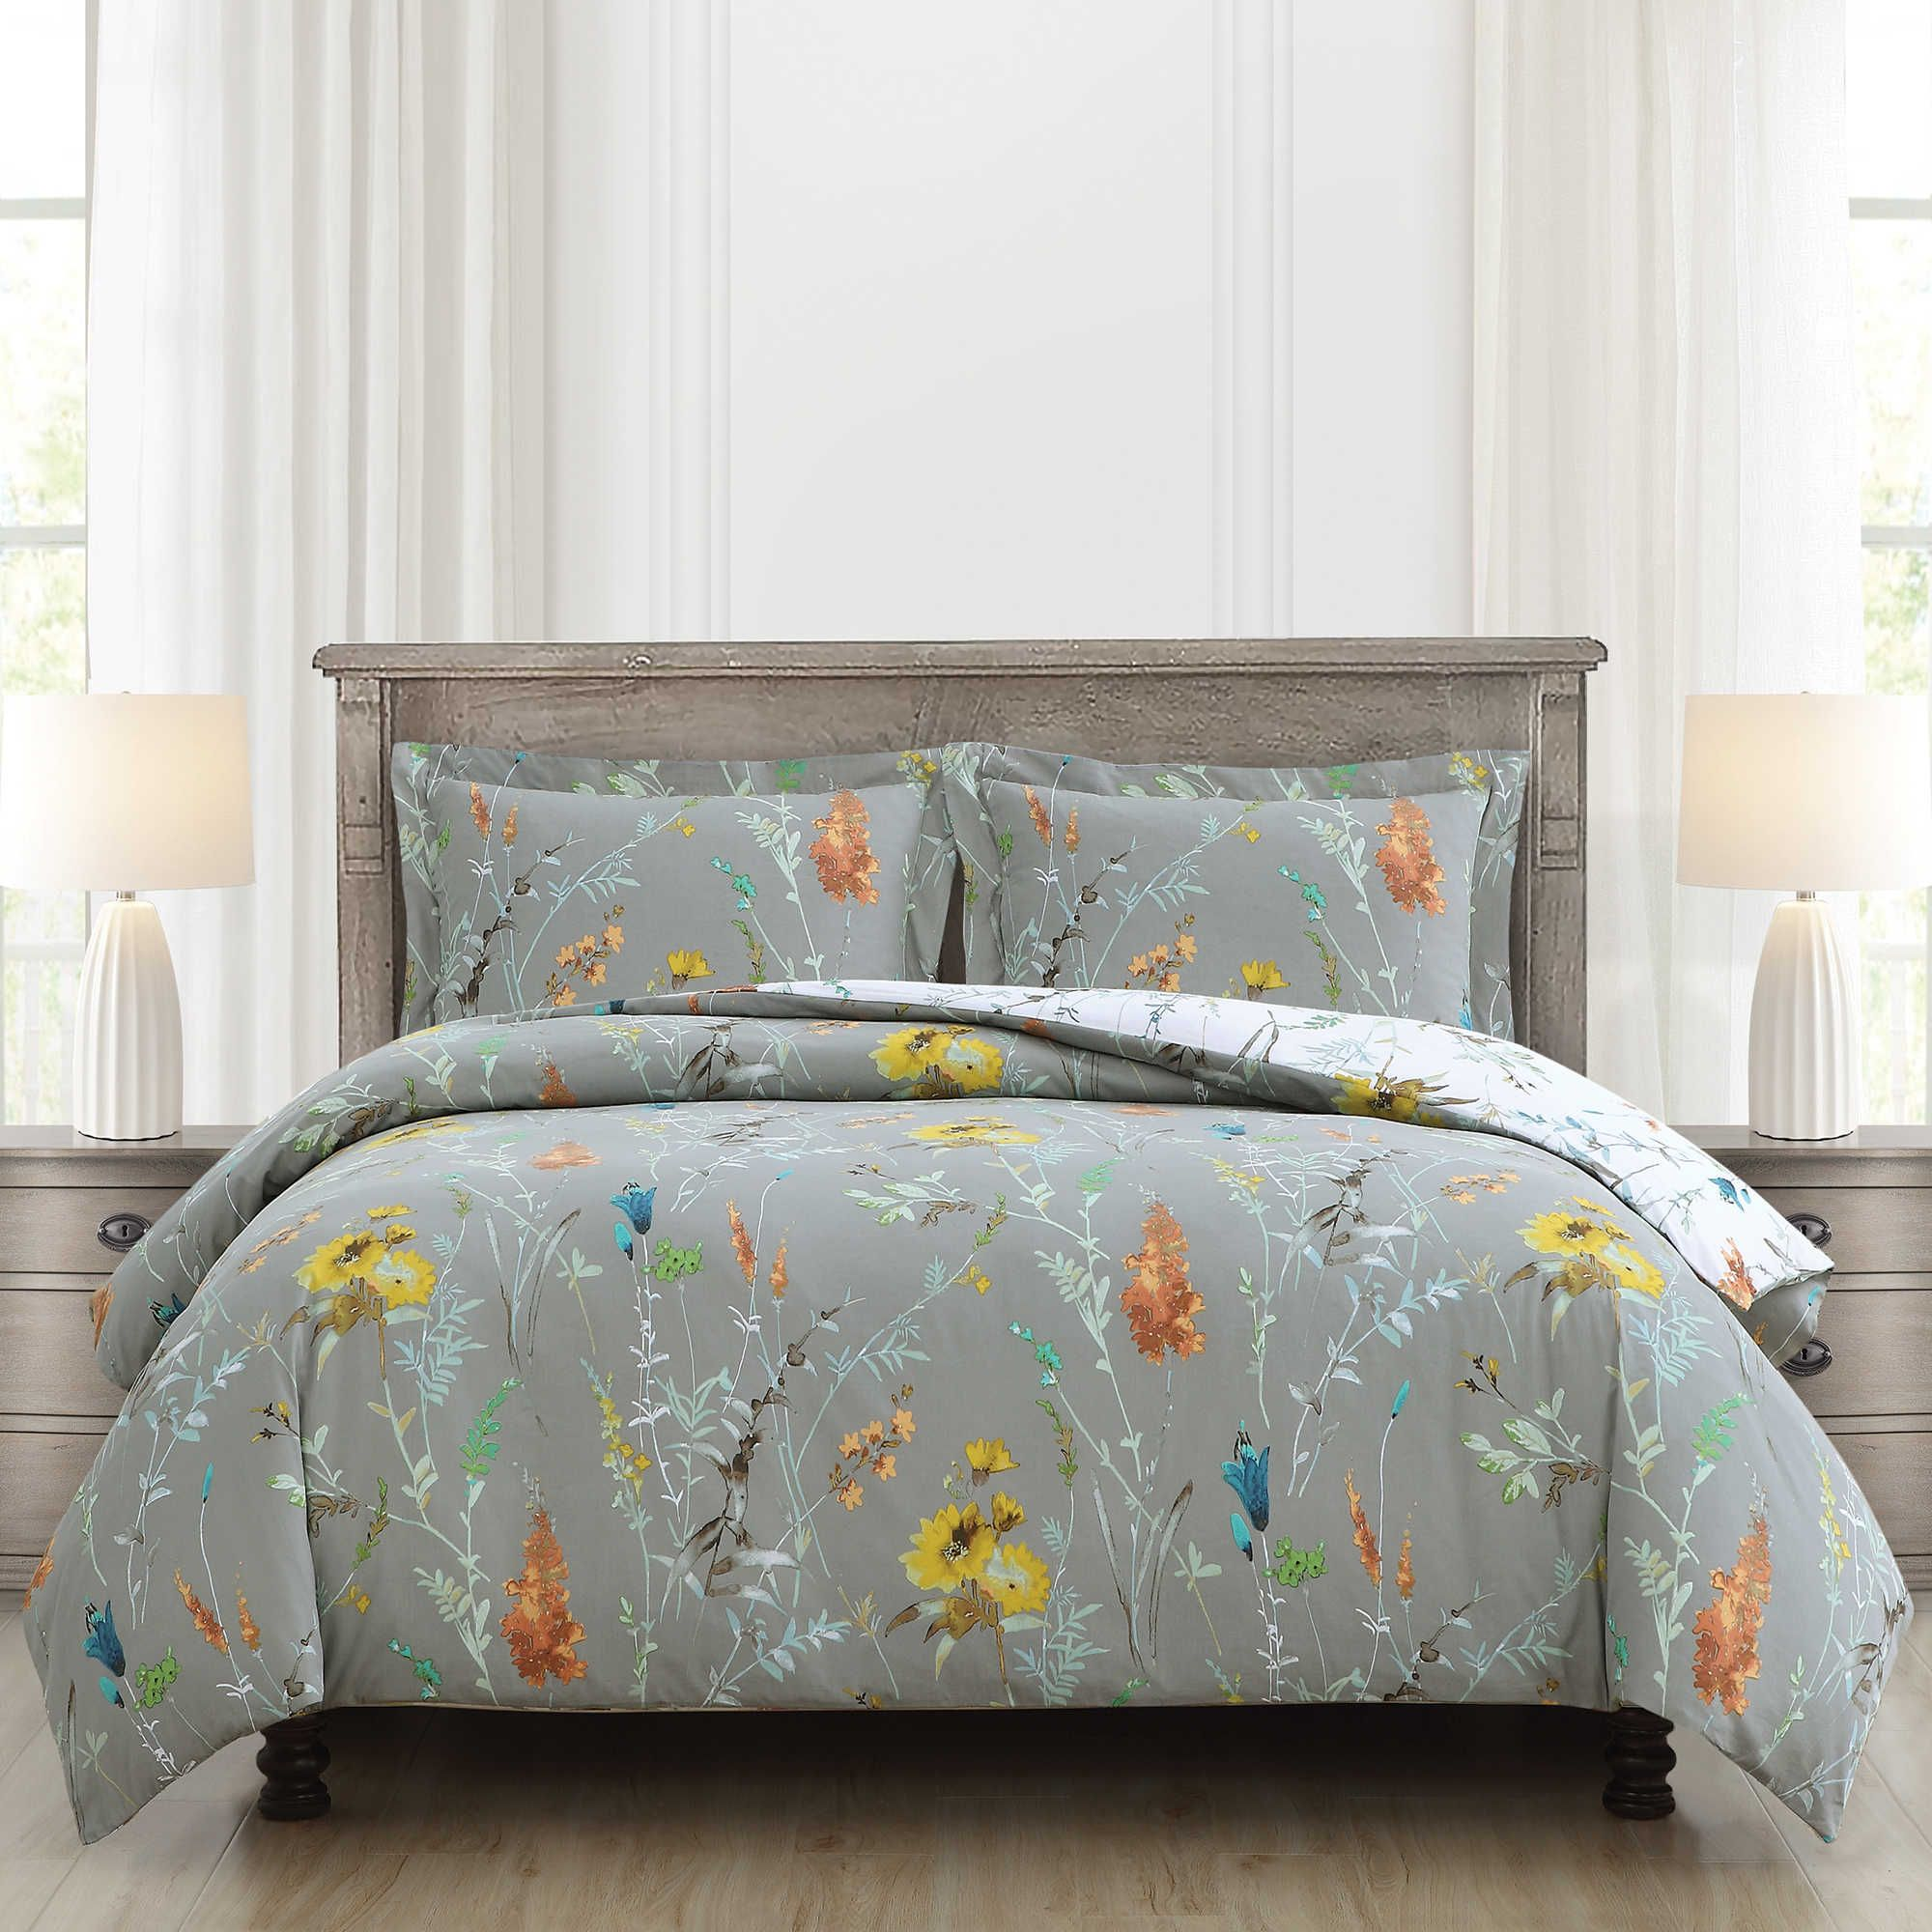 Brigita Floral Reversible Twintwin Xl Comforter Set In Whitegrey